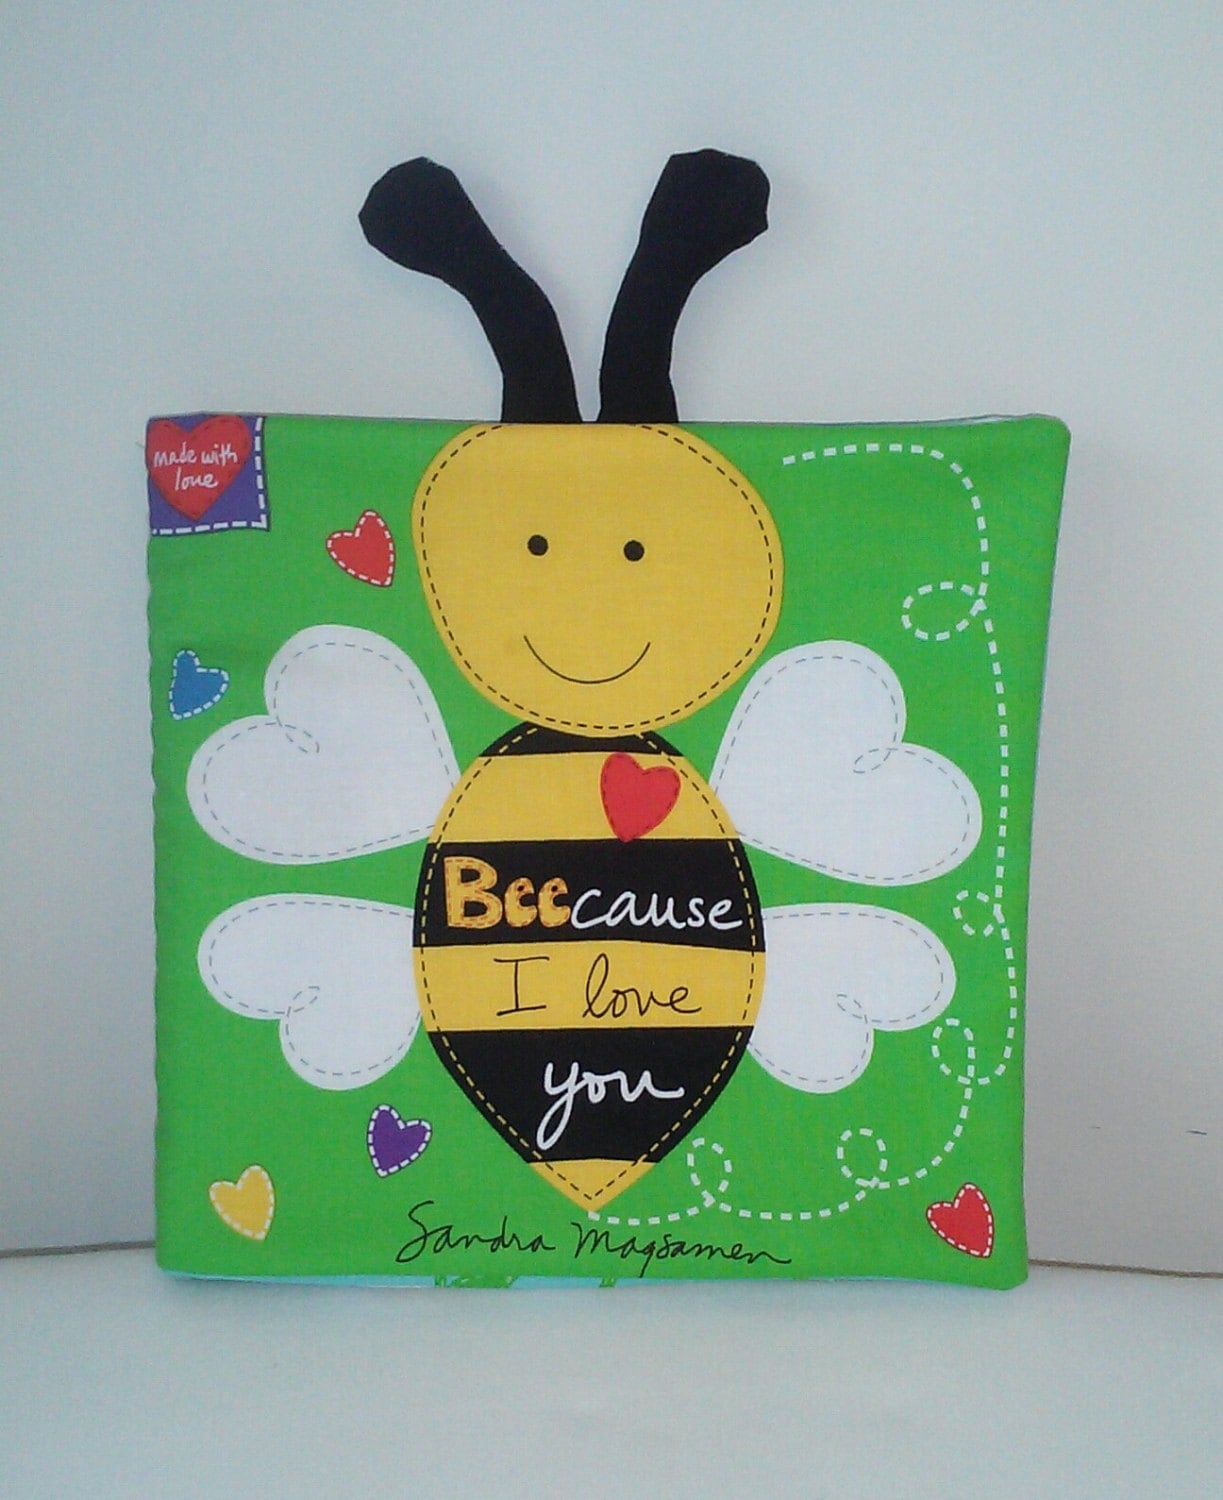 Because I Love You Soft Cloth Books For Baby Children Etsy